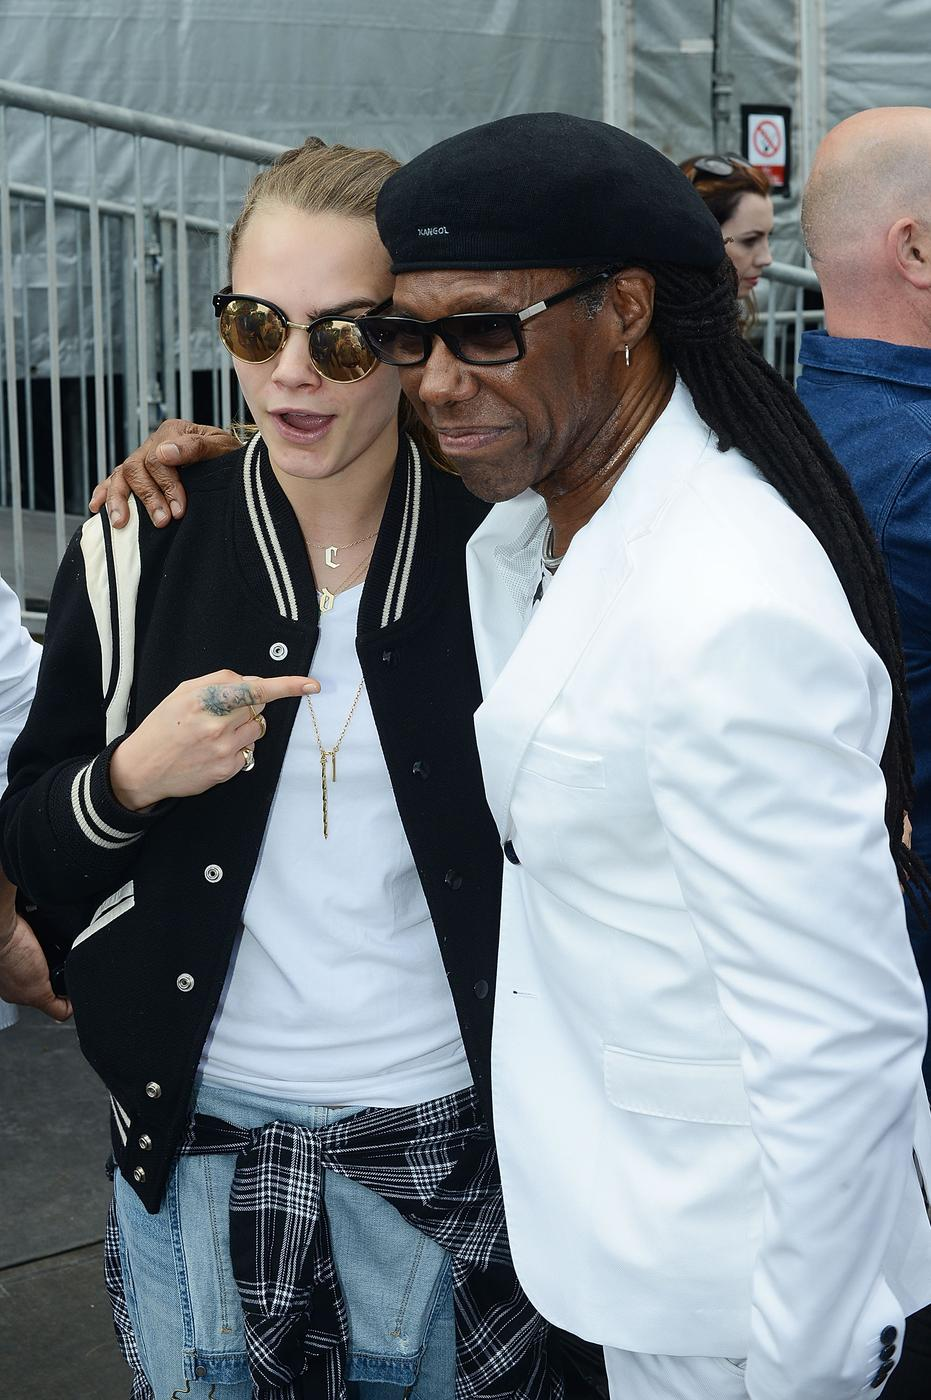 Cara Delevingne teams up with Nile Rodgers as she prepares to launch music career